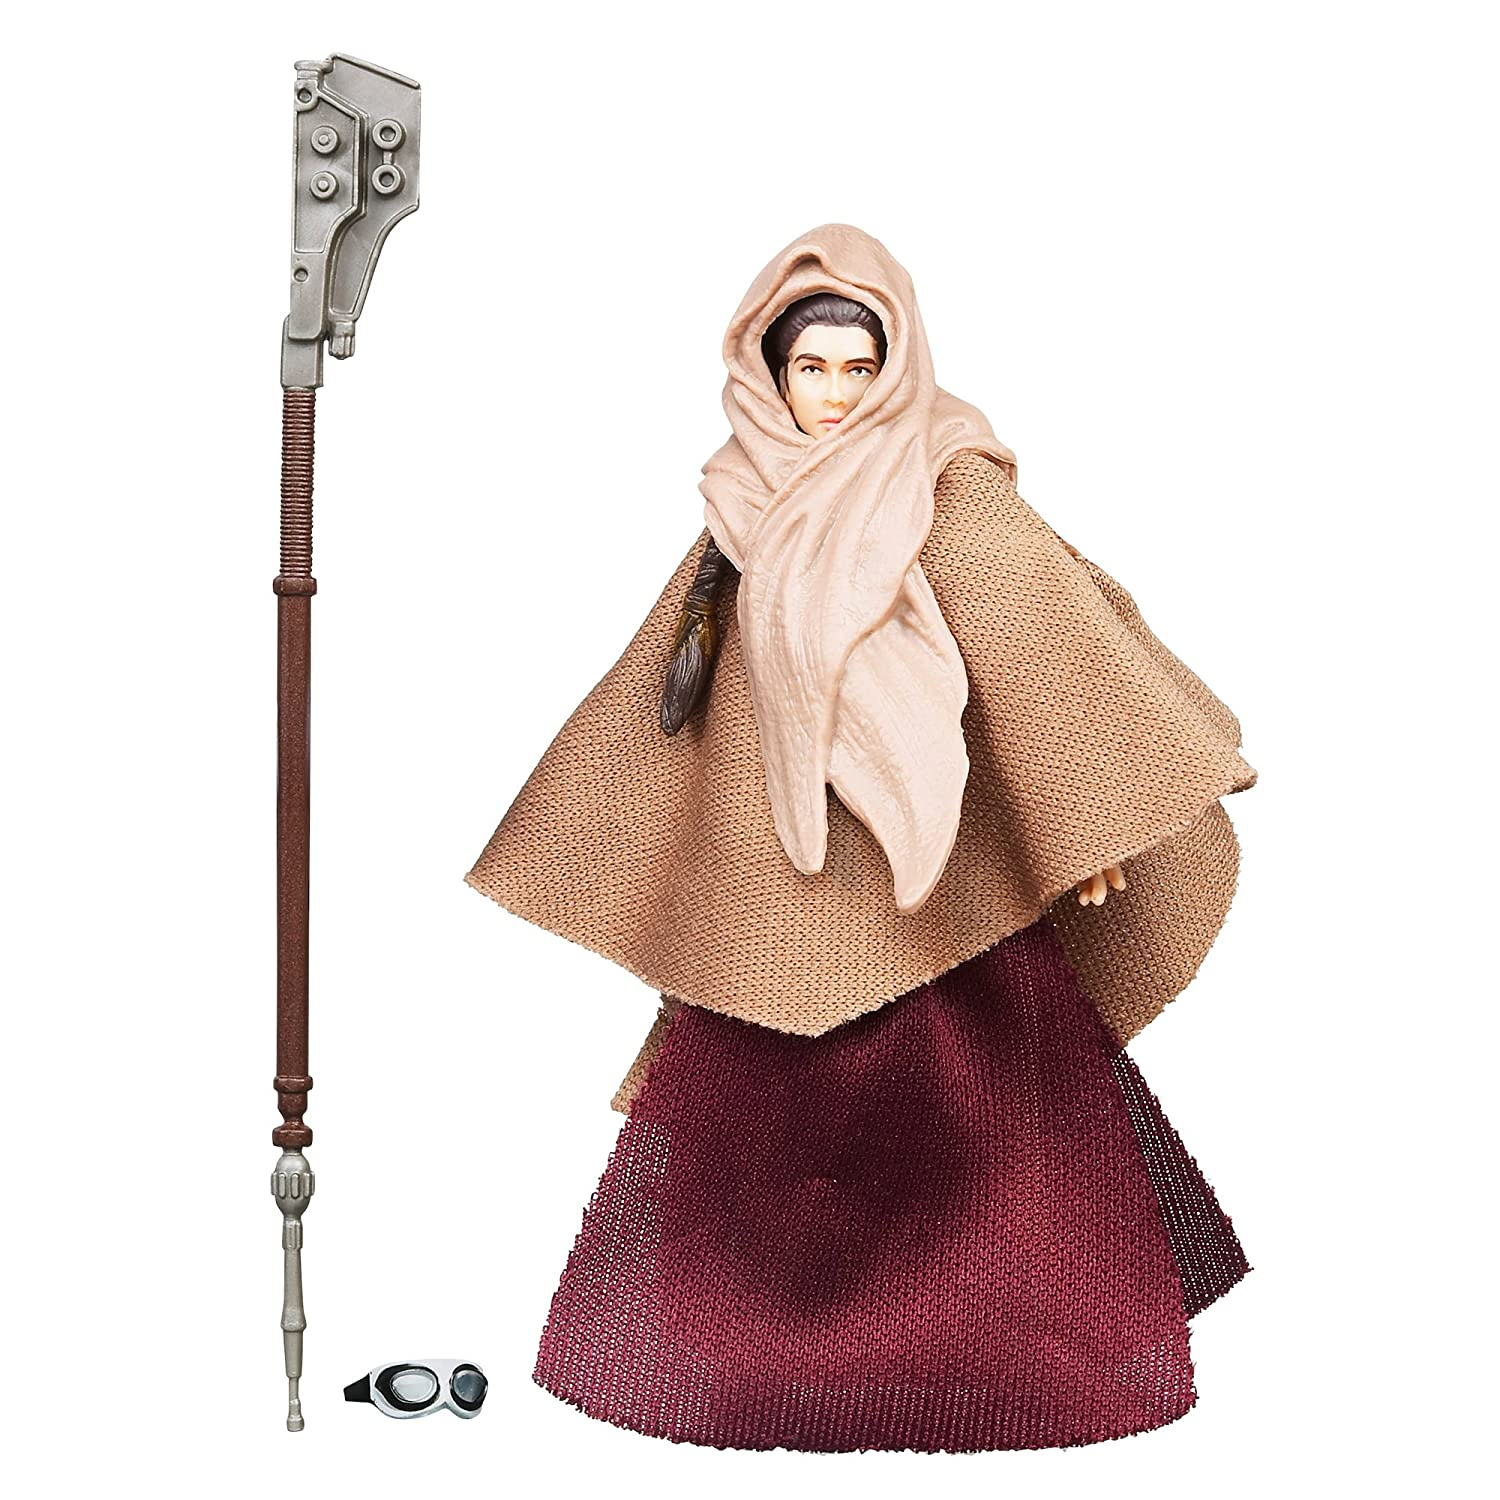 Star Wars Return of the Jedi Princess Leia 49688